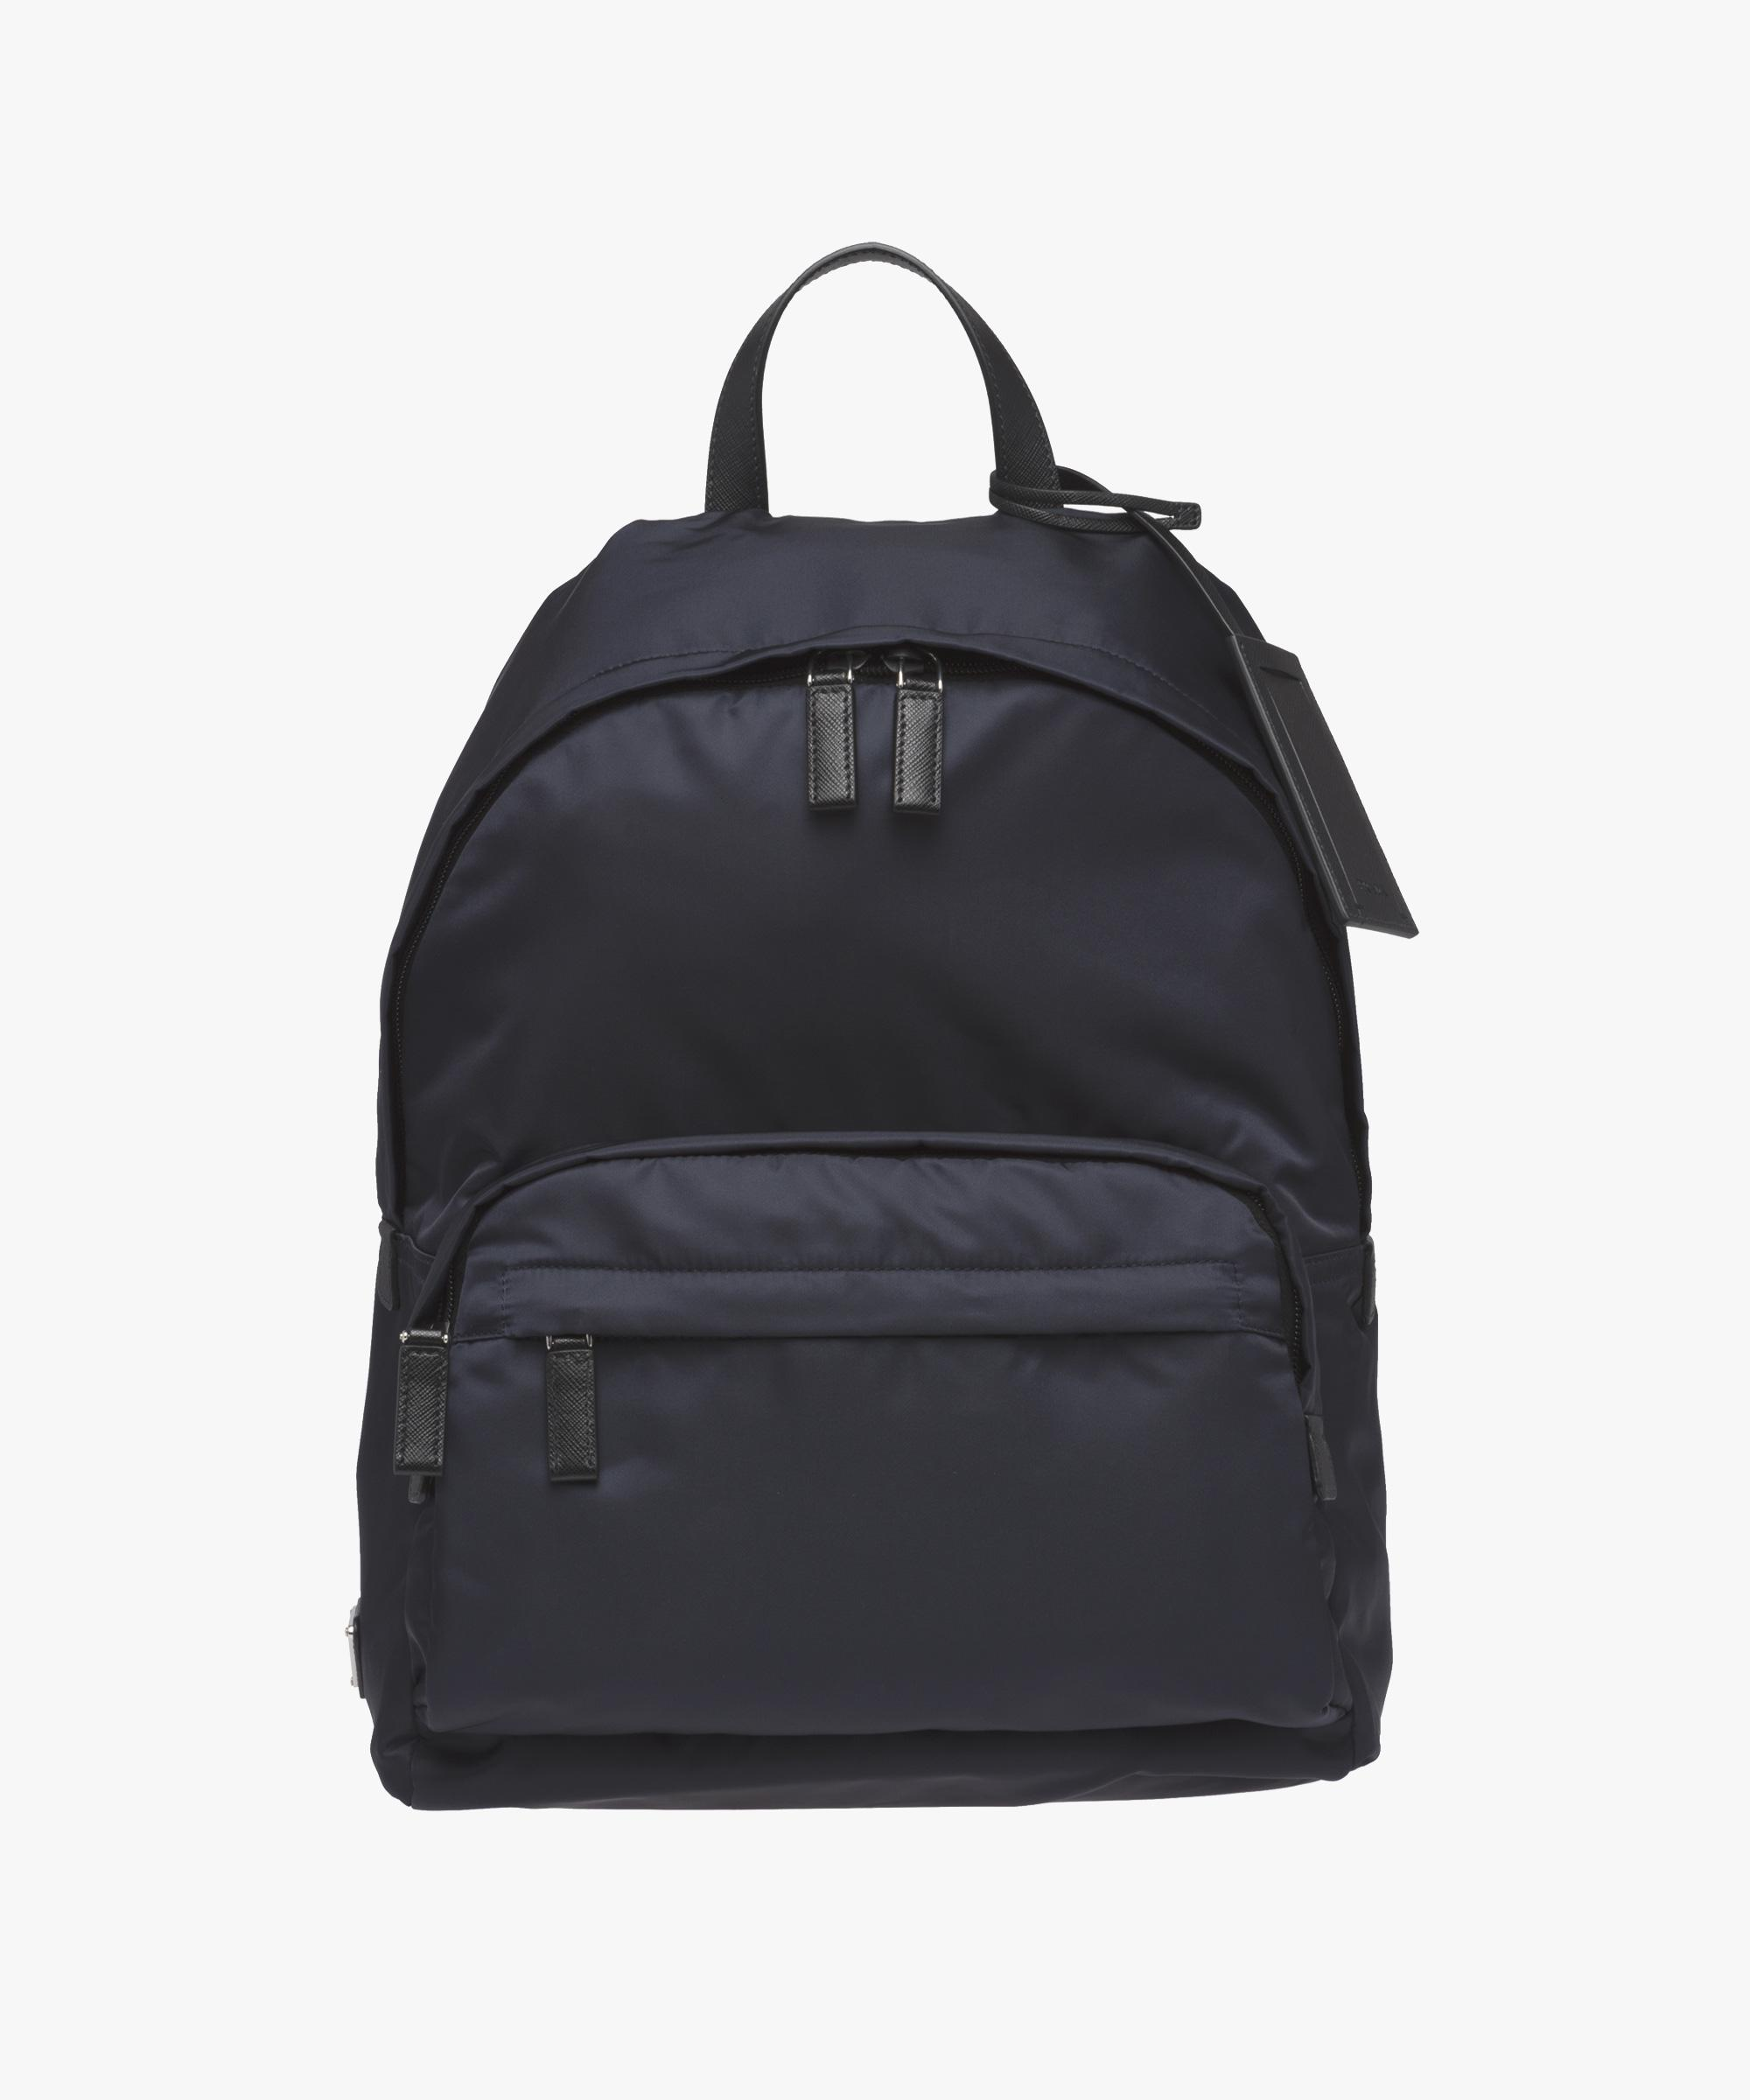 c534490c6246bf Prada Technical Fabric Backpack in Blue for Men - Lyst